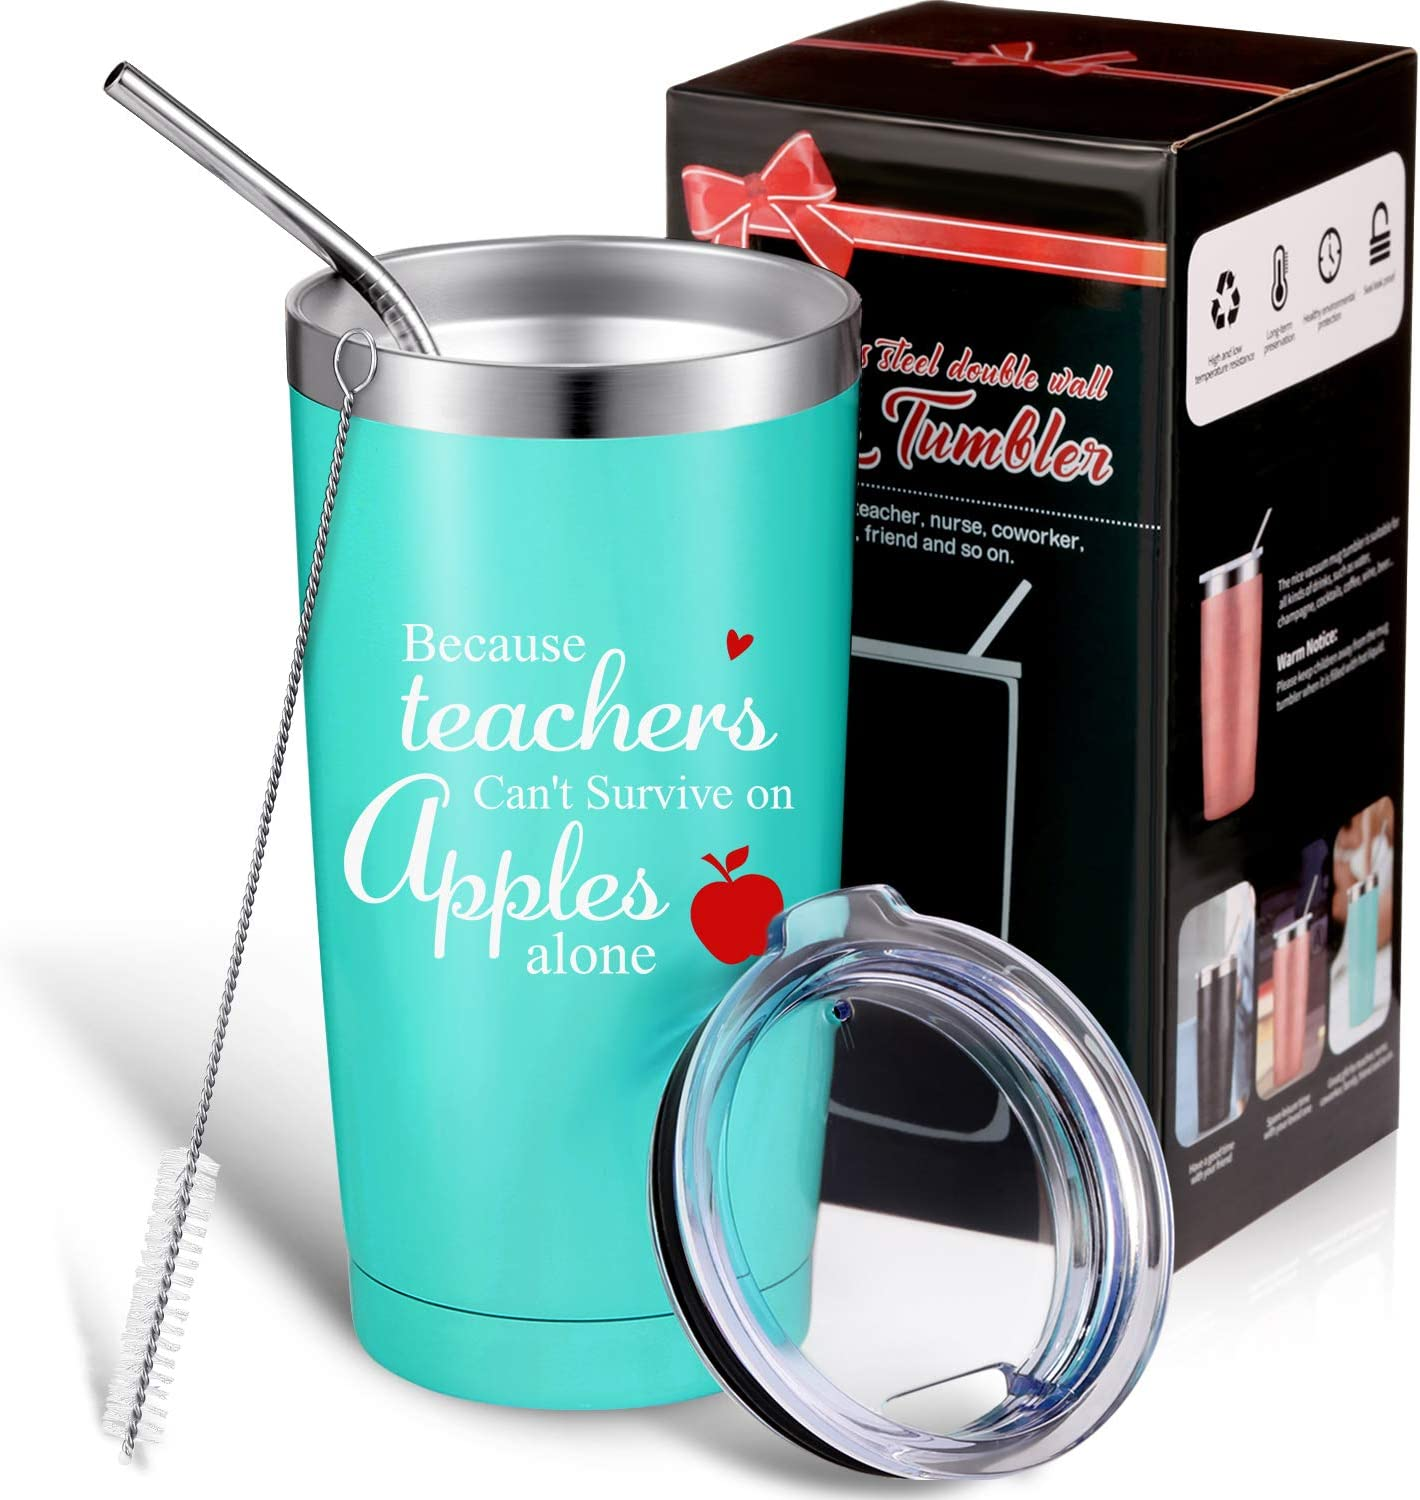 Boao Teachers Appreciation Gift, Printed with Teachers Can't Survive on Apples Alone, Personalized Thank You Teacher Gift for Science, Art, Assistant, 20 oz Double Wall Vacuum Insulated Tumbler Mug